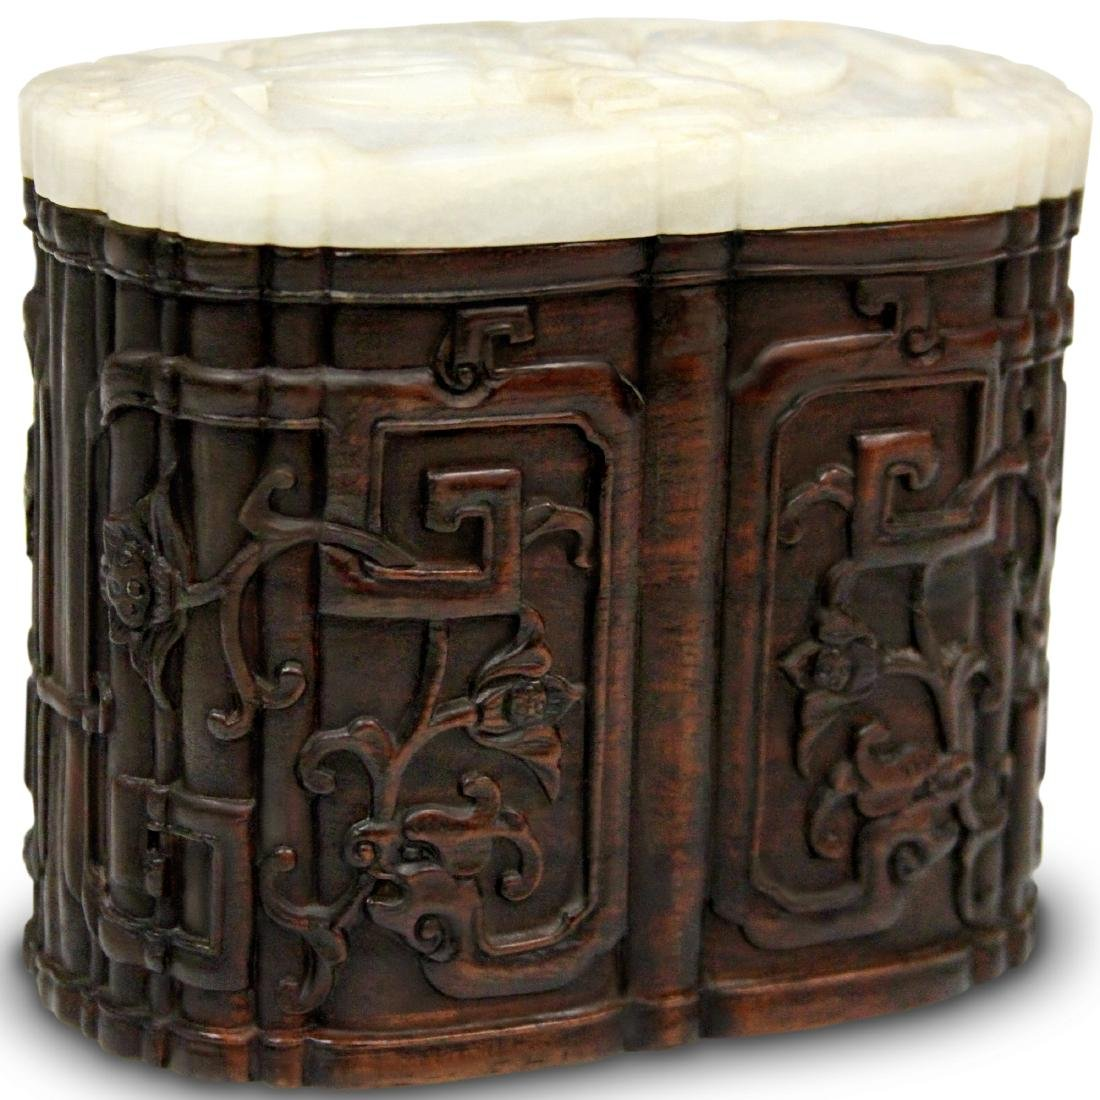 QING DYNASTY CARVED BOX WITH JADE TOP